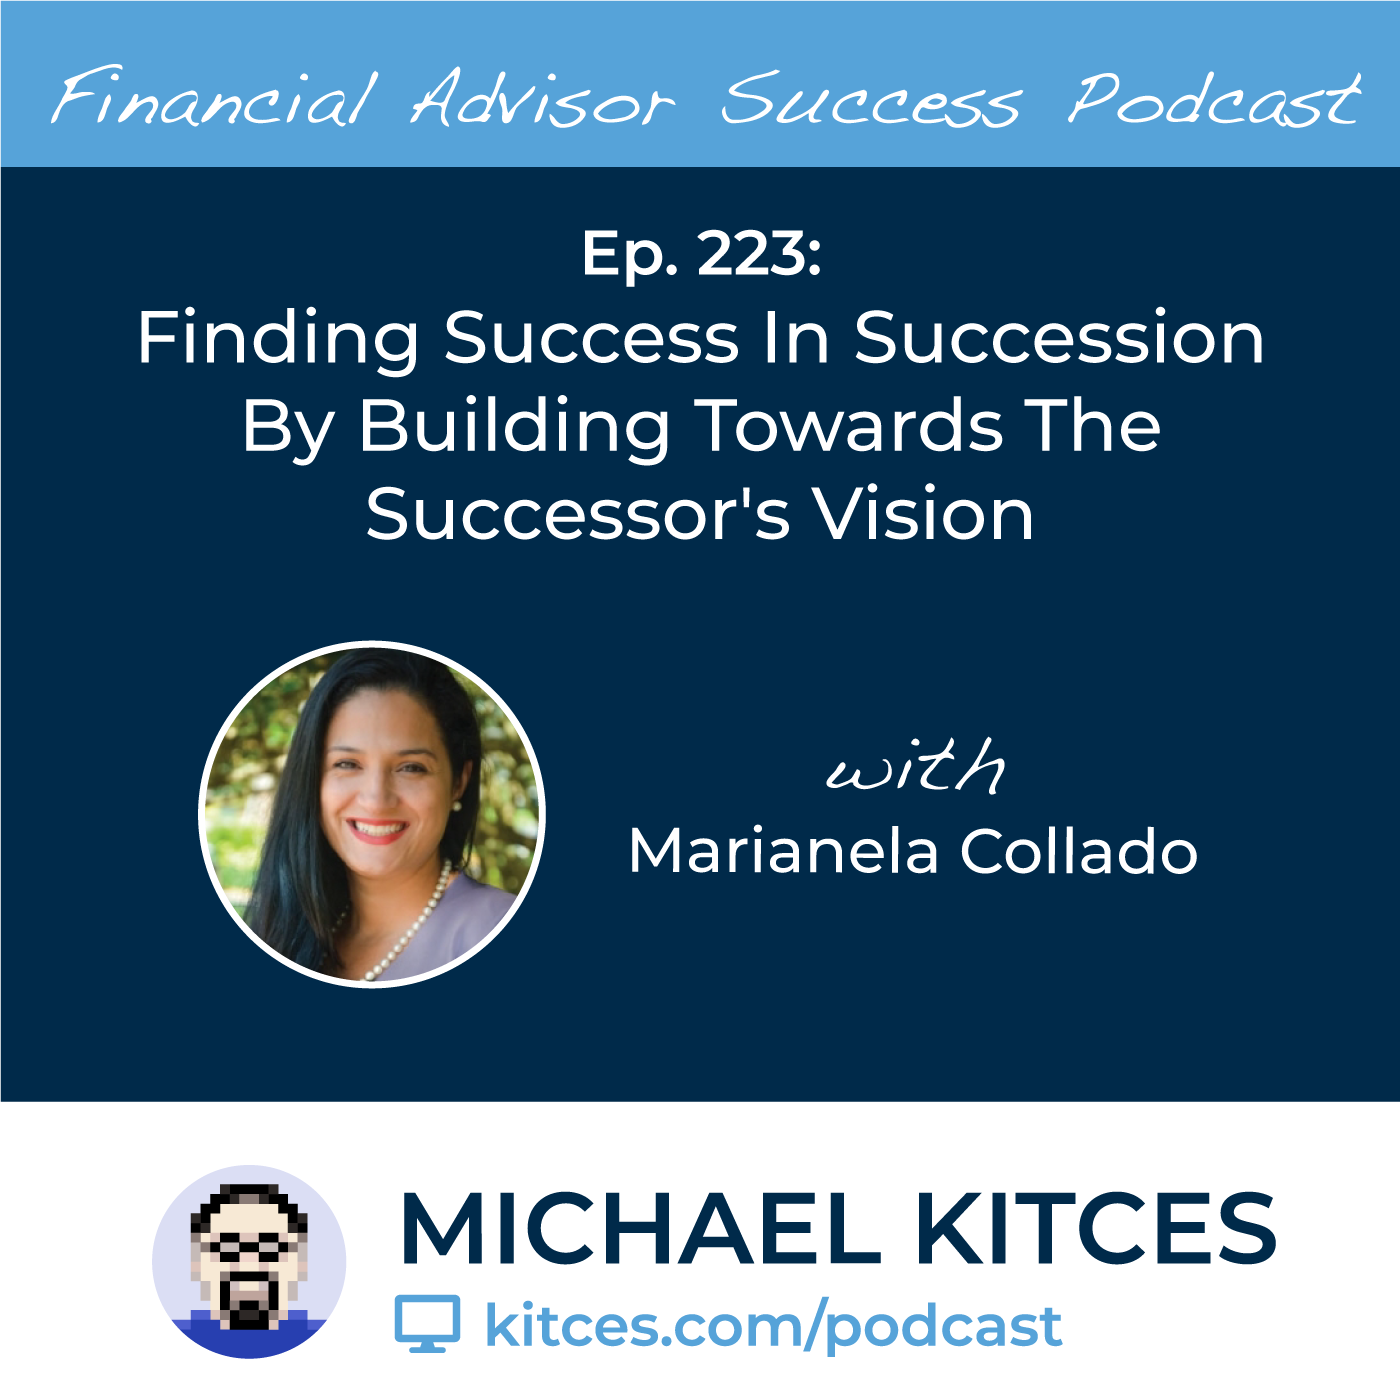 Ep 223: Finding Success In Succession By Building Towards The Successor's Vision with Marianela Collado